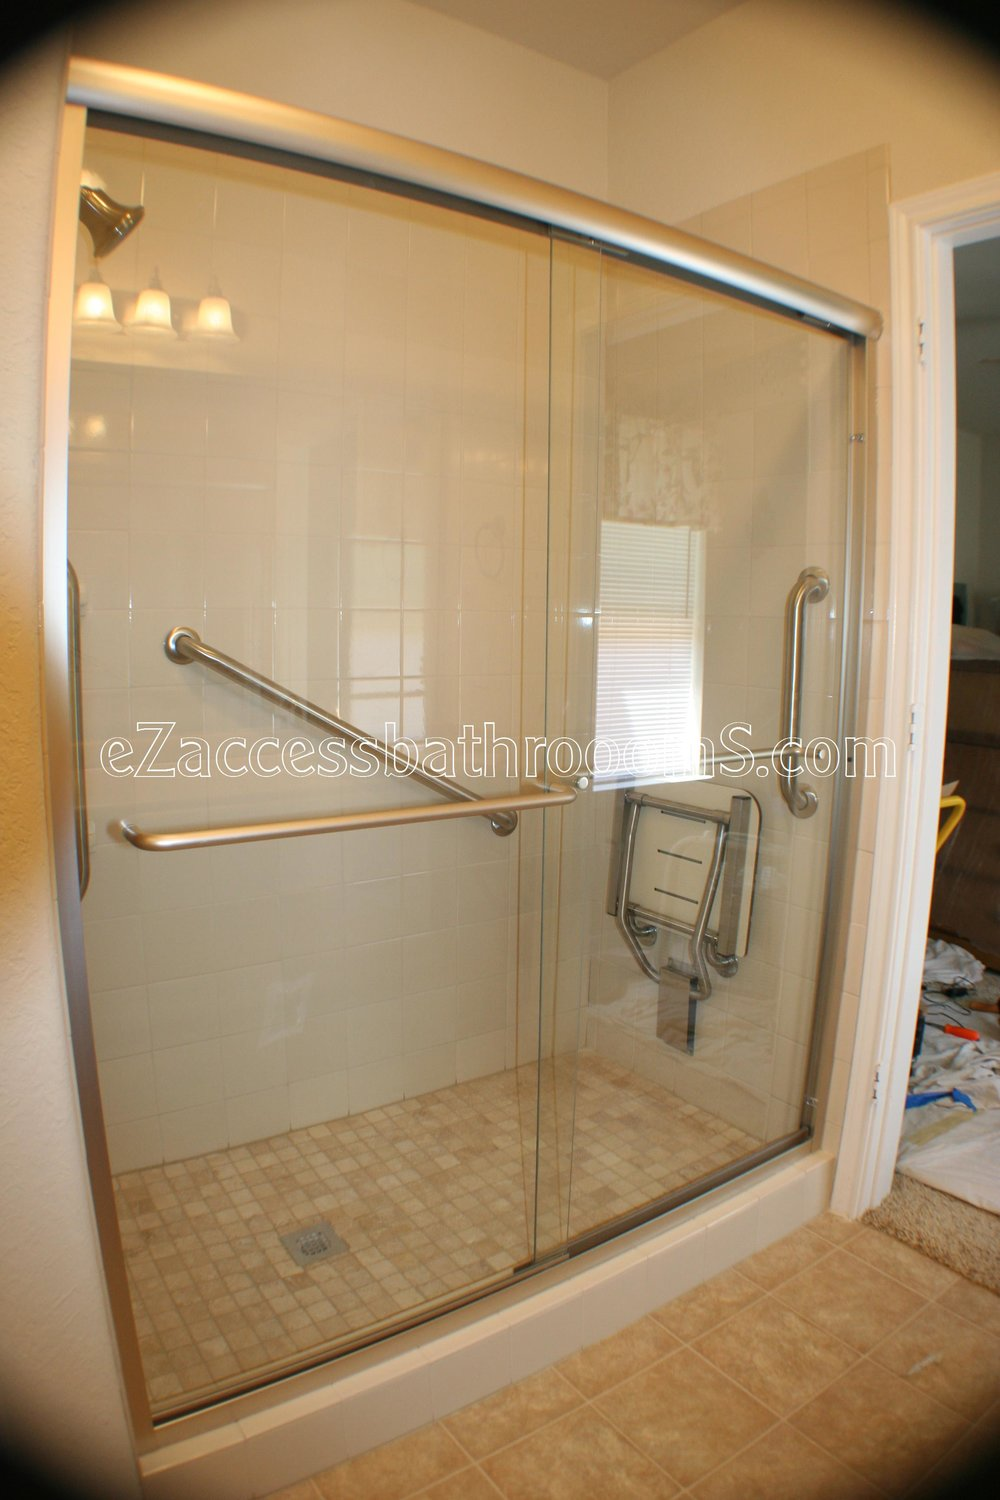 TUBTOSHOWERS CONVERSIONS EZACCESSBATHROOMS.COM 832202843 BRYANT 121.JPG